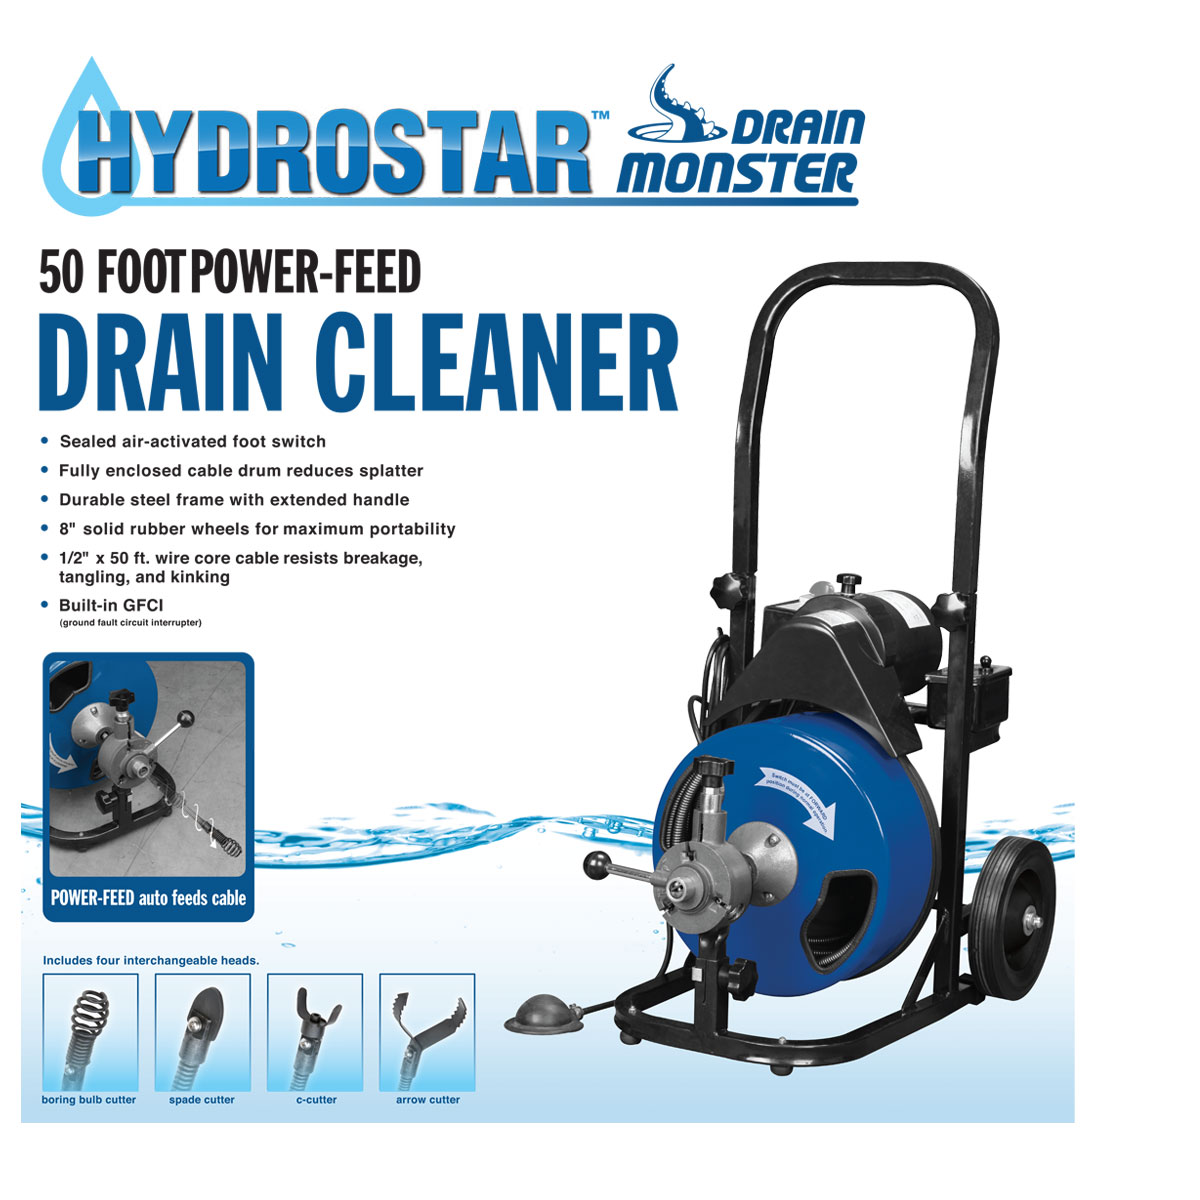 50 Ft Commercial Power Feed Drain Cleaner With Gfci